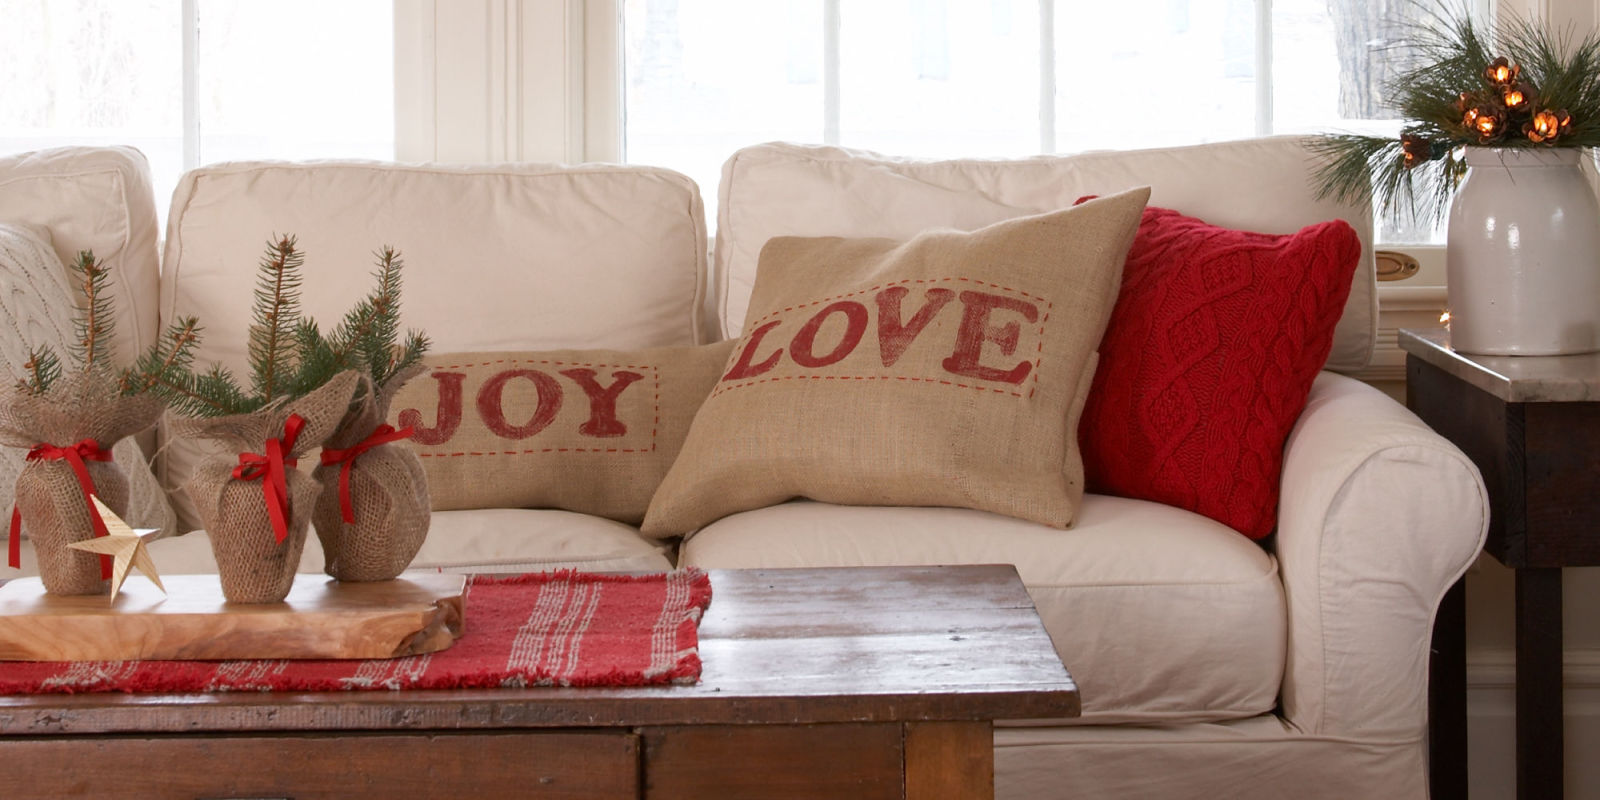 How To Organize Your House For Holiday Guests In Under 15